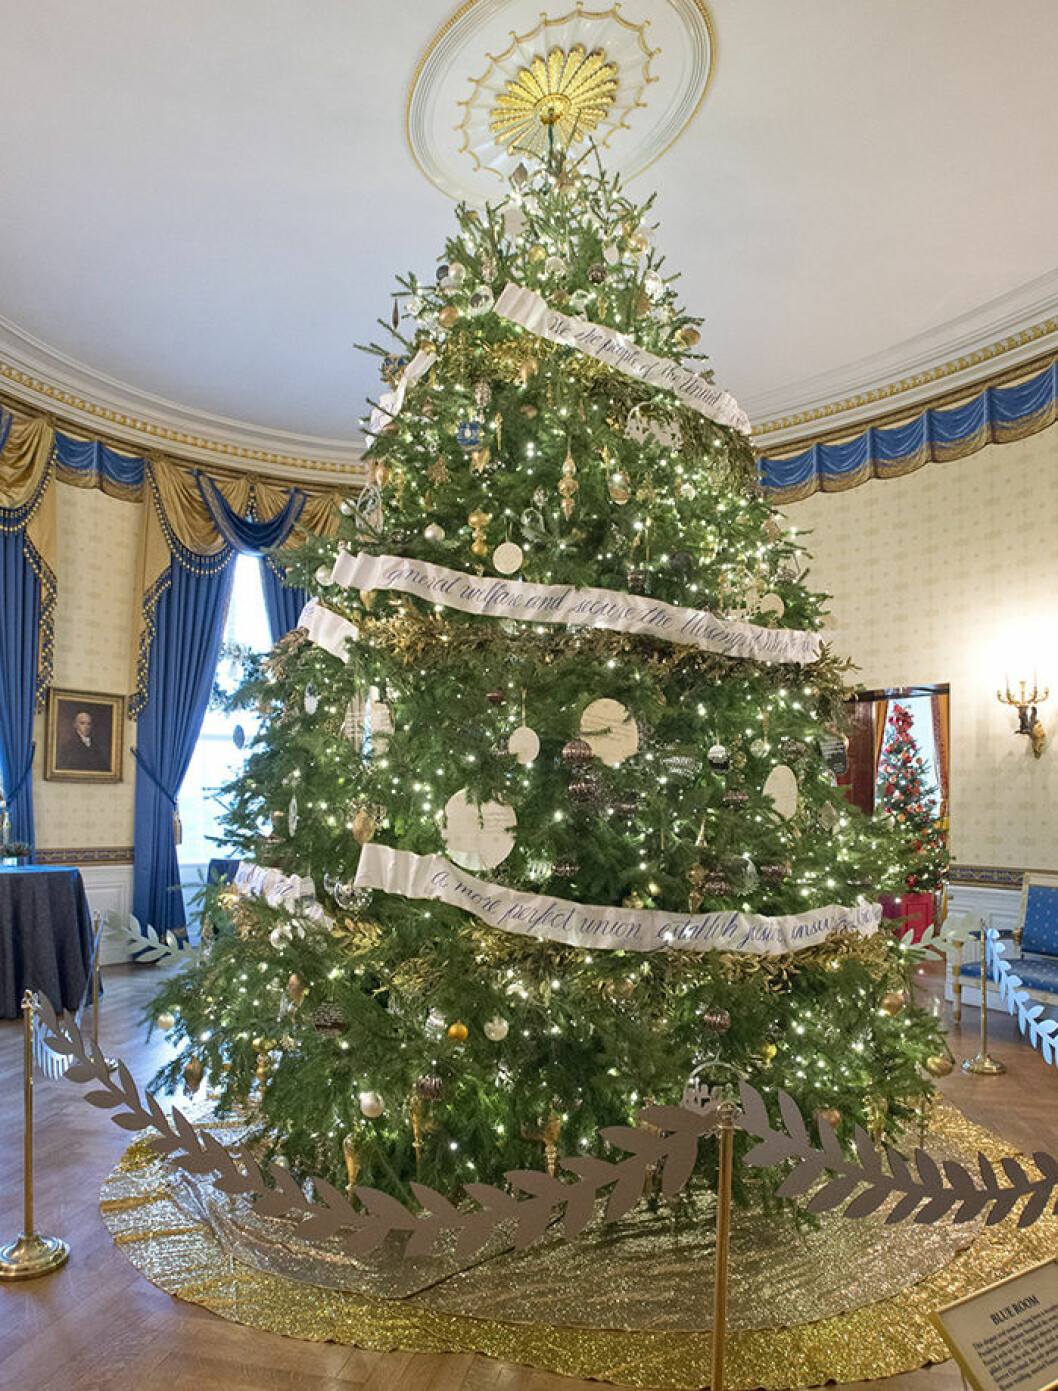 "The 2016 White House Christmas decorations are previewed for the press at the White House in Washington, DC on Tuesday, November 29, 2016. Pictured is the Official White House Christmas Tree in the Blue Room. The first lady's office released the following statement to describe those decorations, ""This year?s holiday theme, 'The Gift of the Holidays,' reflects on not only the joy of giving and receiving, but also the true gifts of life, such as service, friends and family, education, and good health, as we celebrate the holiday season."" Credit: Ron Sachs / CNP - NO WIRE SERVICE - Photo: Ron Sachs/Consolidated/dpa (c) DPA / IBL BildbyrÂ"